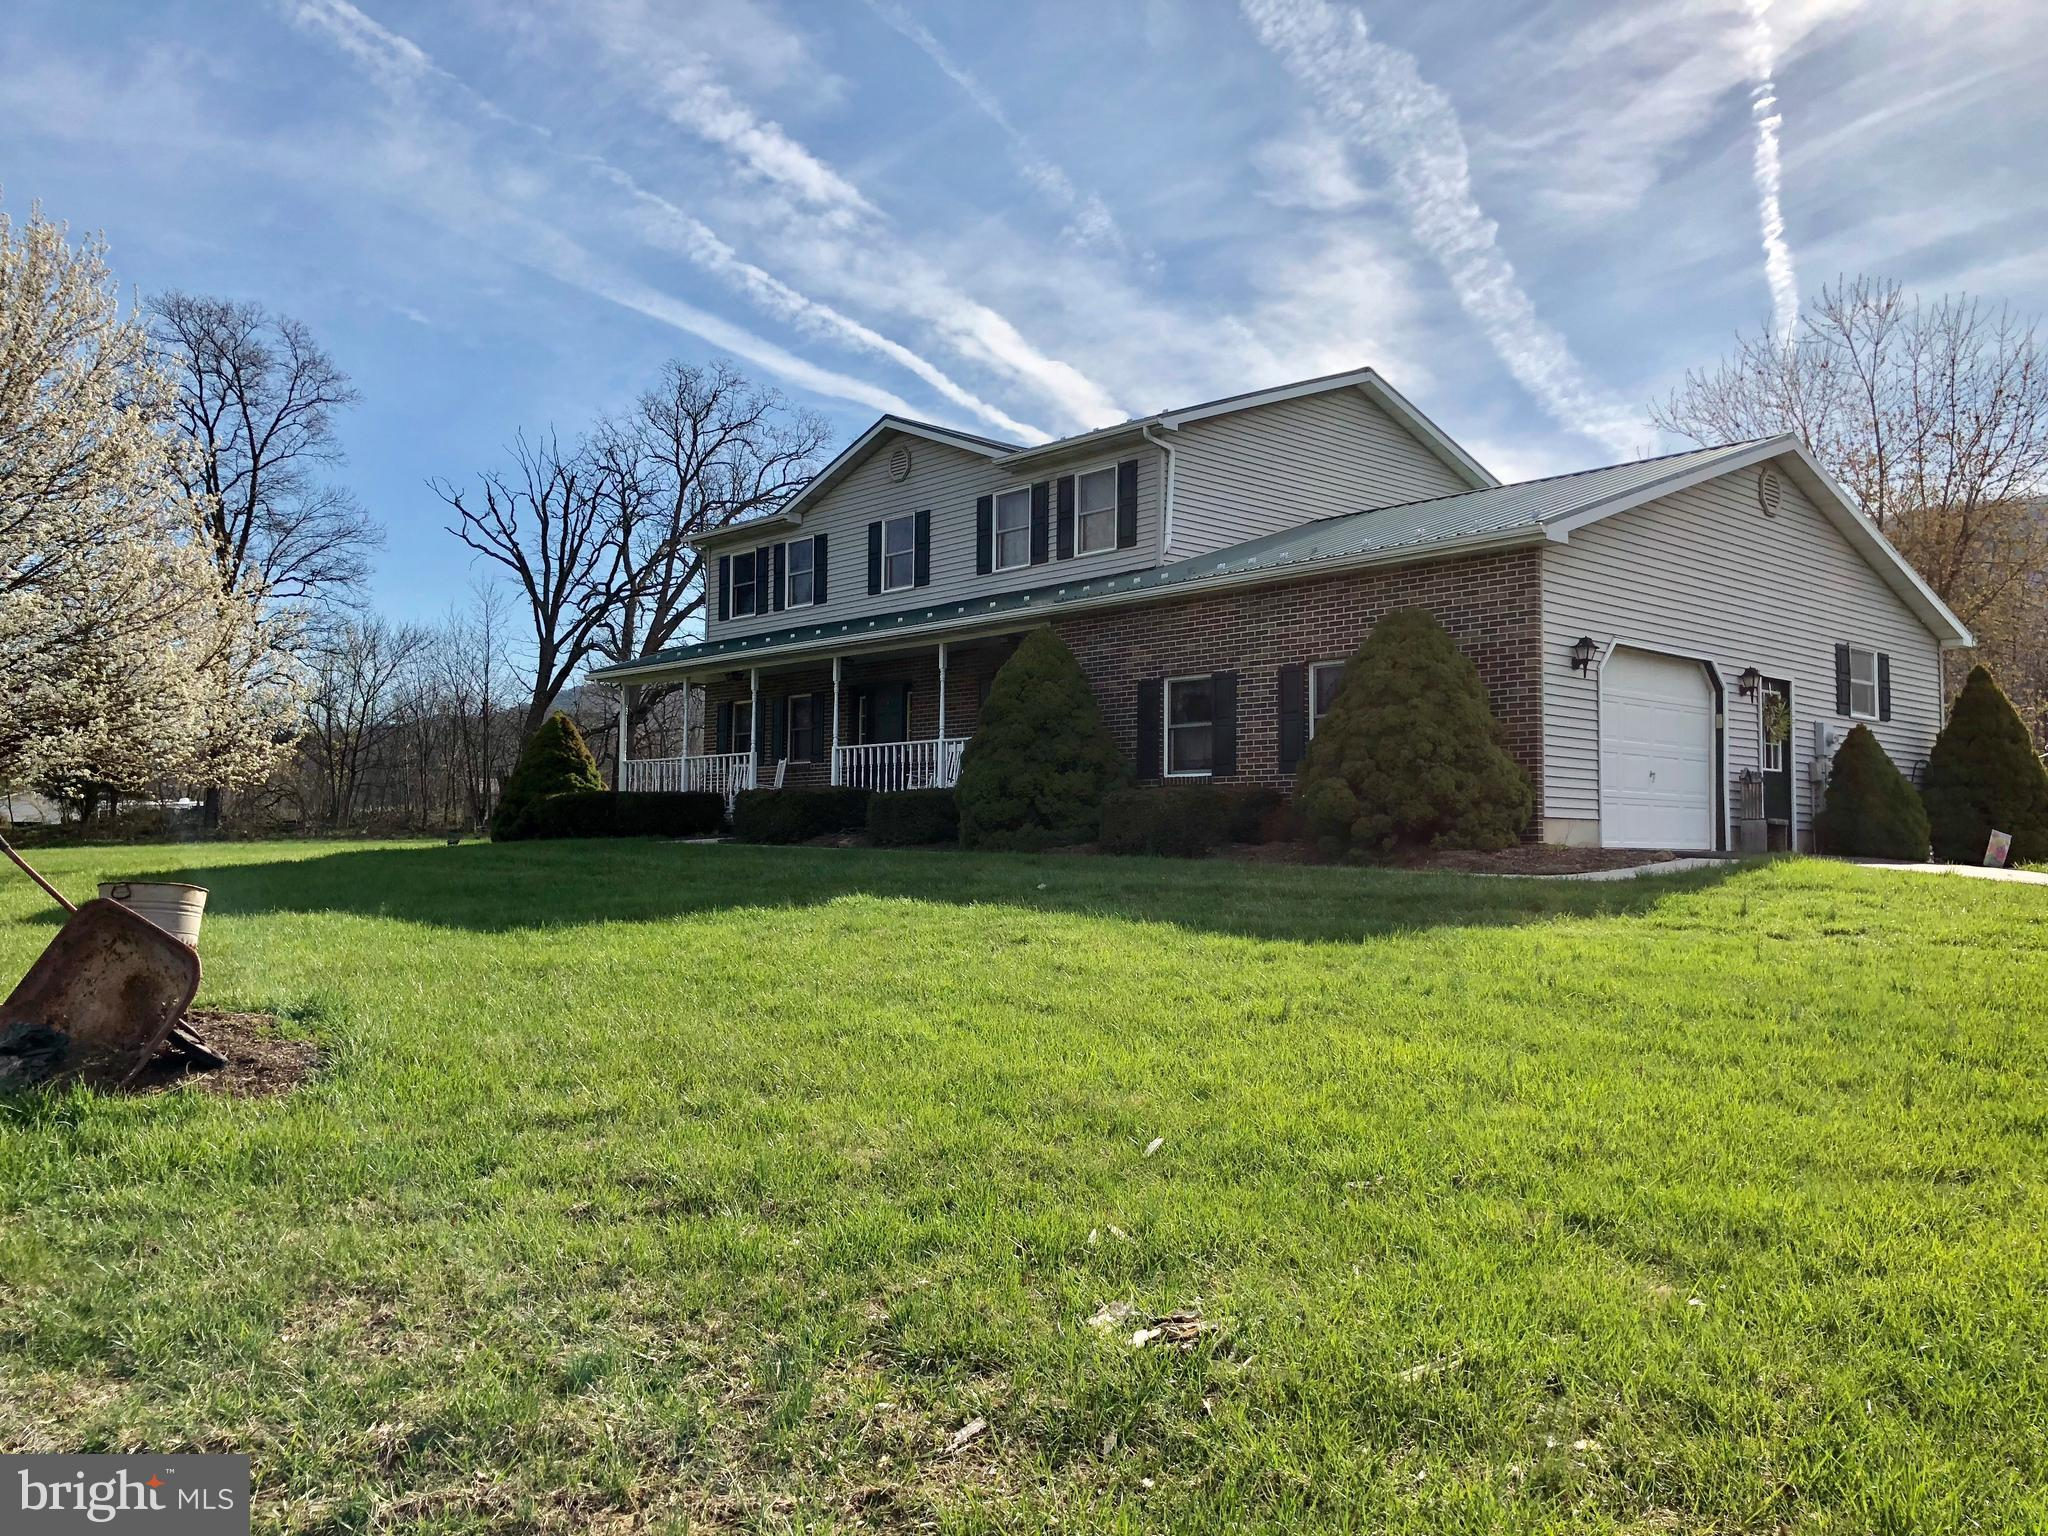 22460 GREAT COVE ROAD, MC CONNELLSBURG, PA 17233